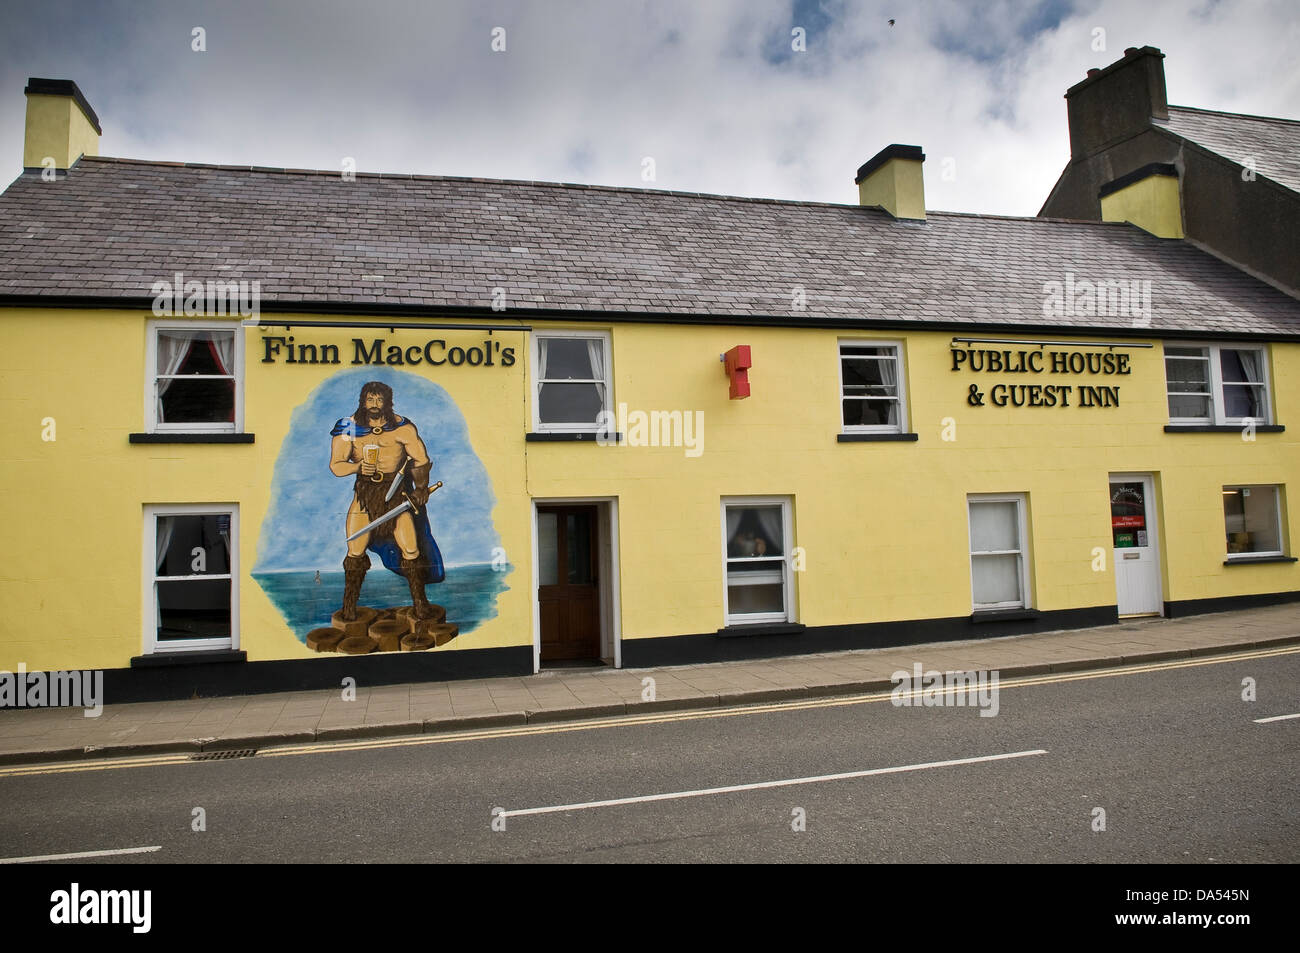 Finn MacCool's Public House in Bushmills, County Antrim, Northern Ireland, UK - Stock Image